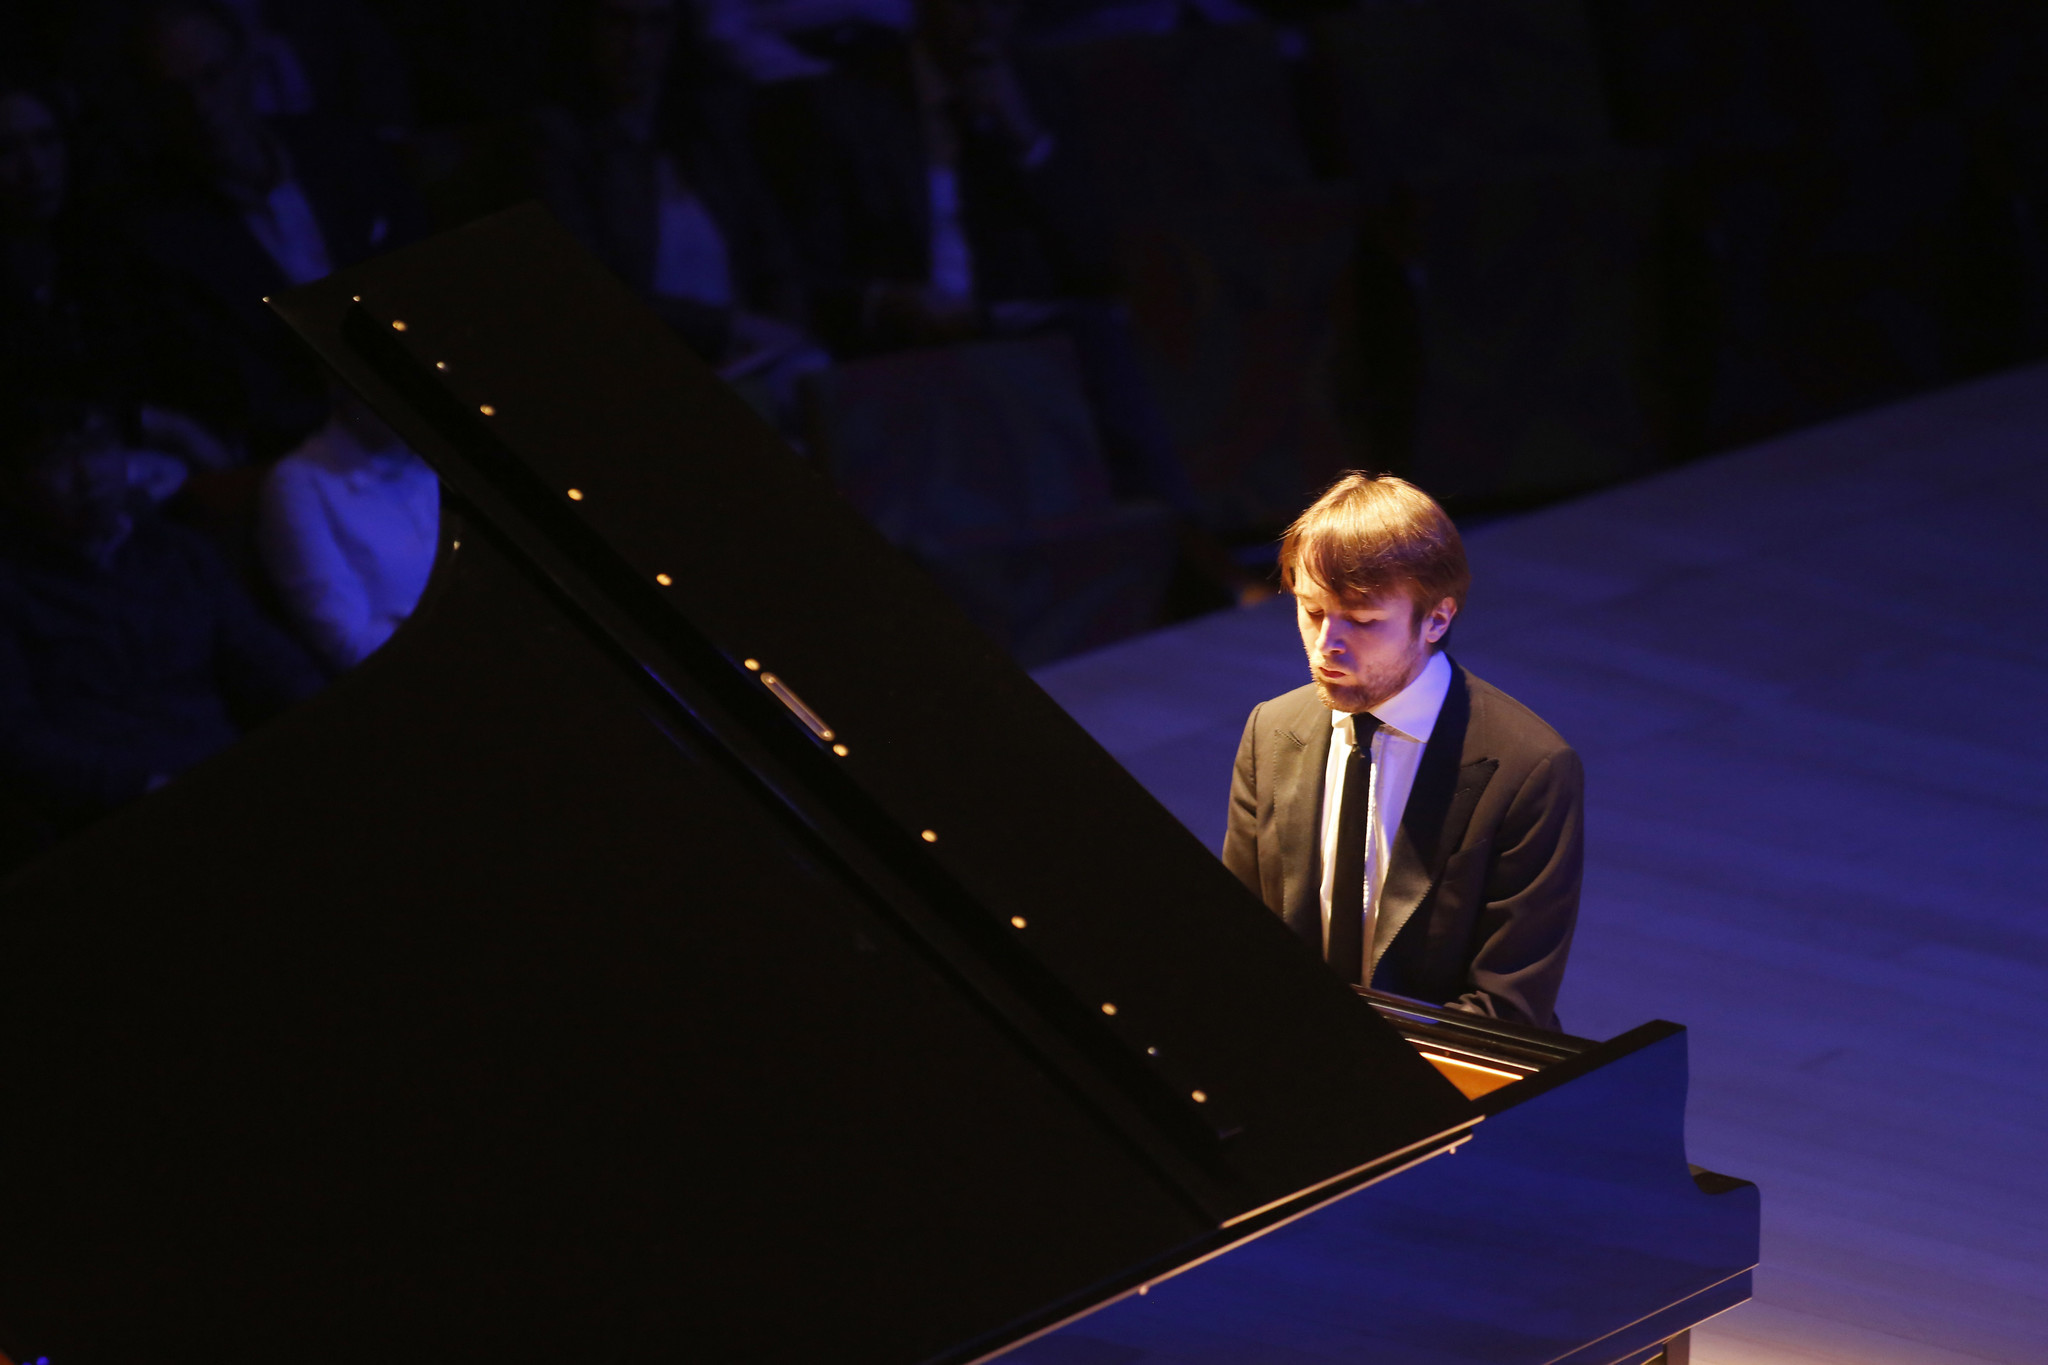 Daniil Trifonov, pictured at Walt Disney Concert Hall earlier this year. The Russian sensation returns in December.